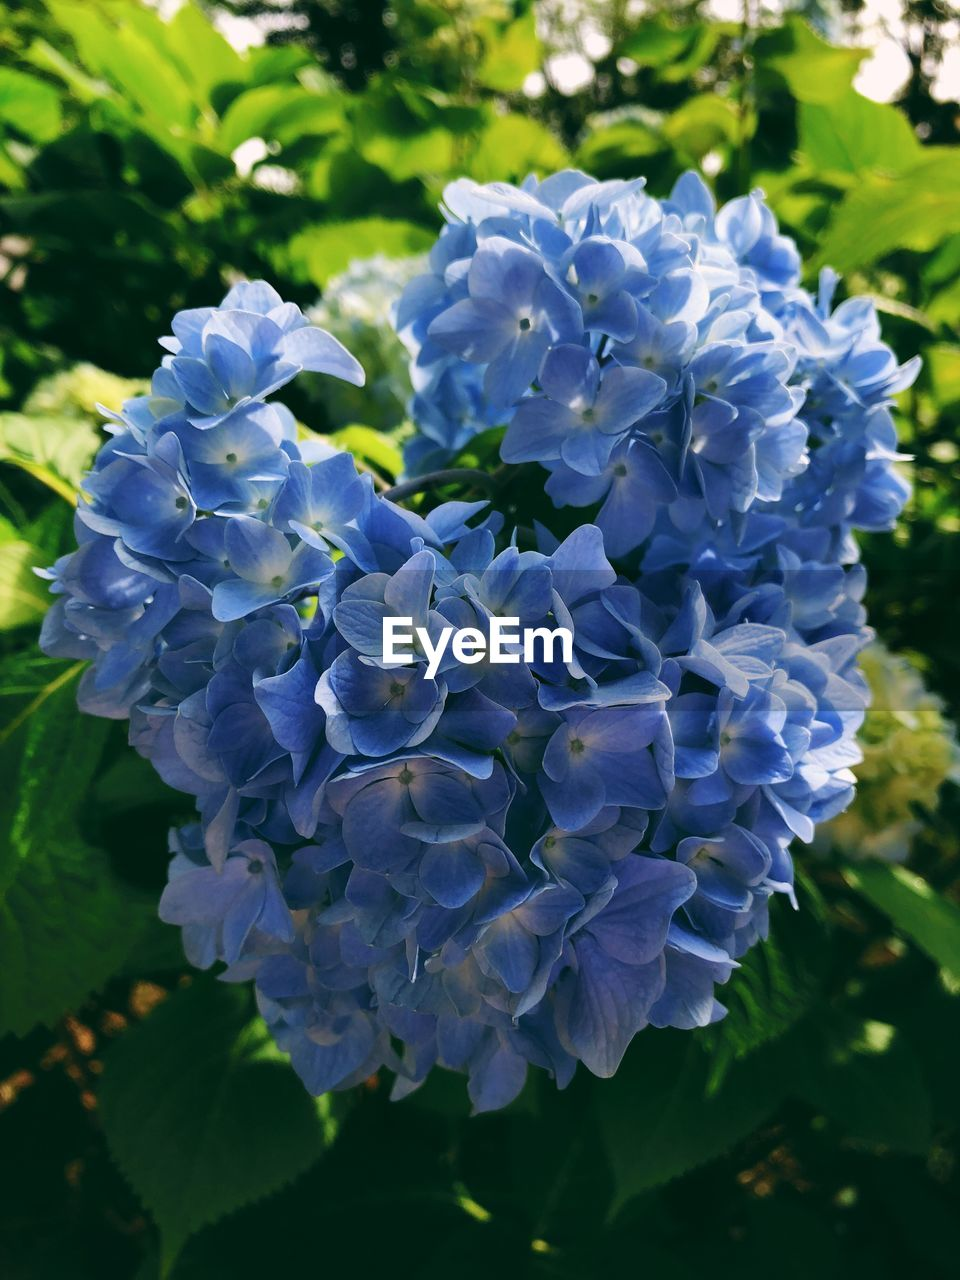 flowering plant, flower, fragility, beauty in nature, vulnerability, plant, freshness, petal, growth, close-up, inflorescence, flower head, nature, day, purple, focus on foreground, no people, blue, outdoors, plant part, bunch of flowers, lilac